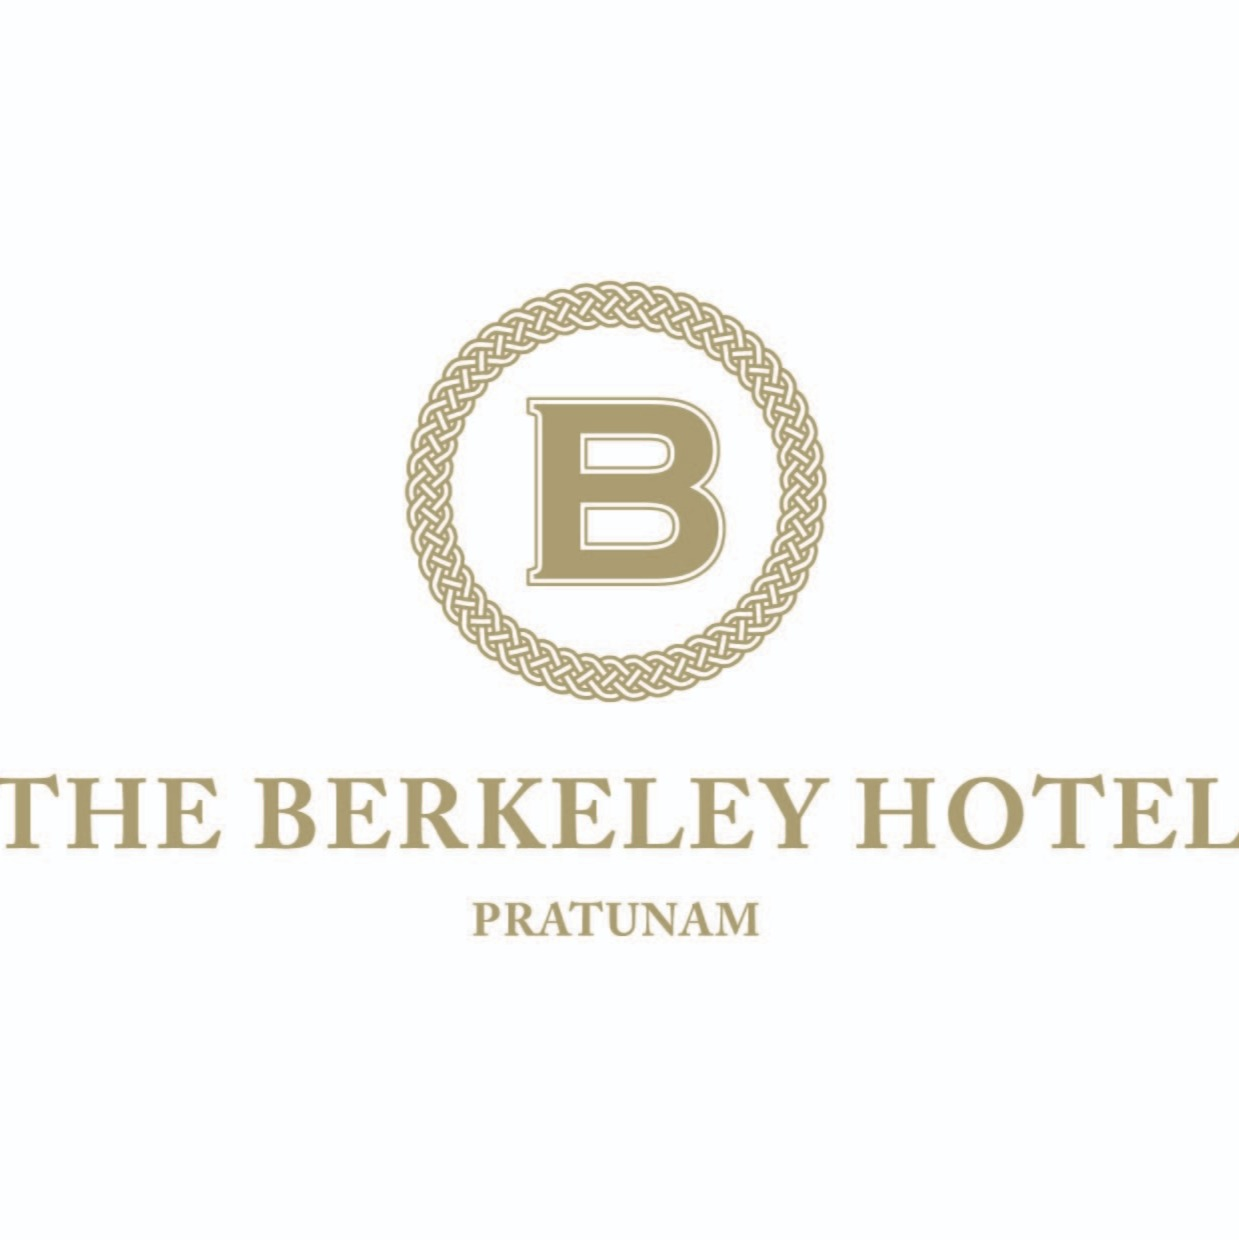 The Berkeley Hotel Pratunam